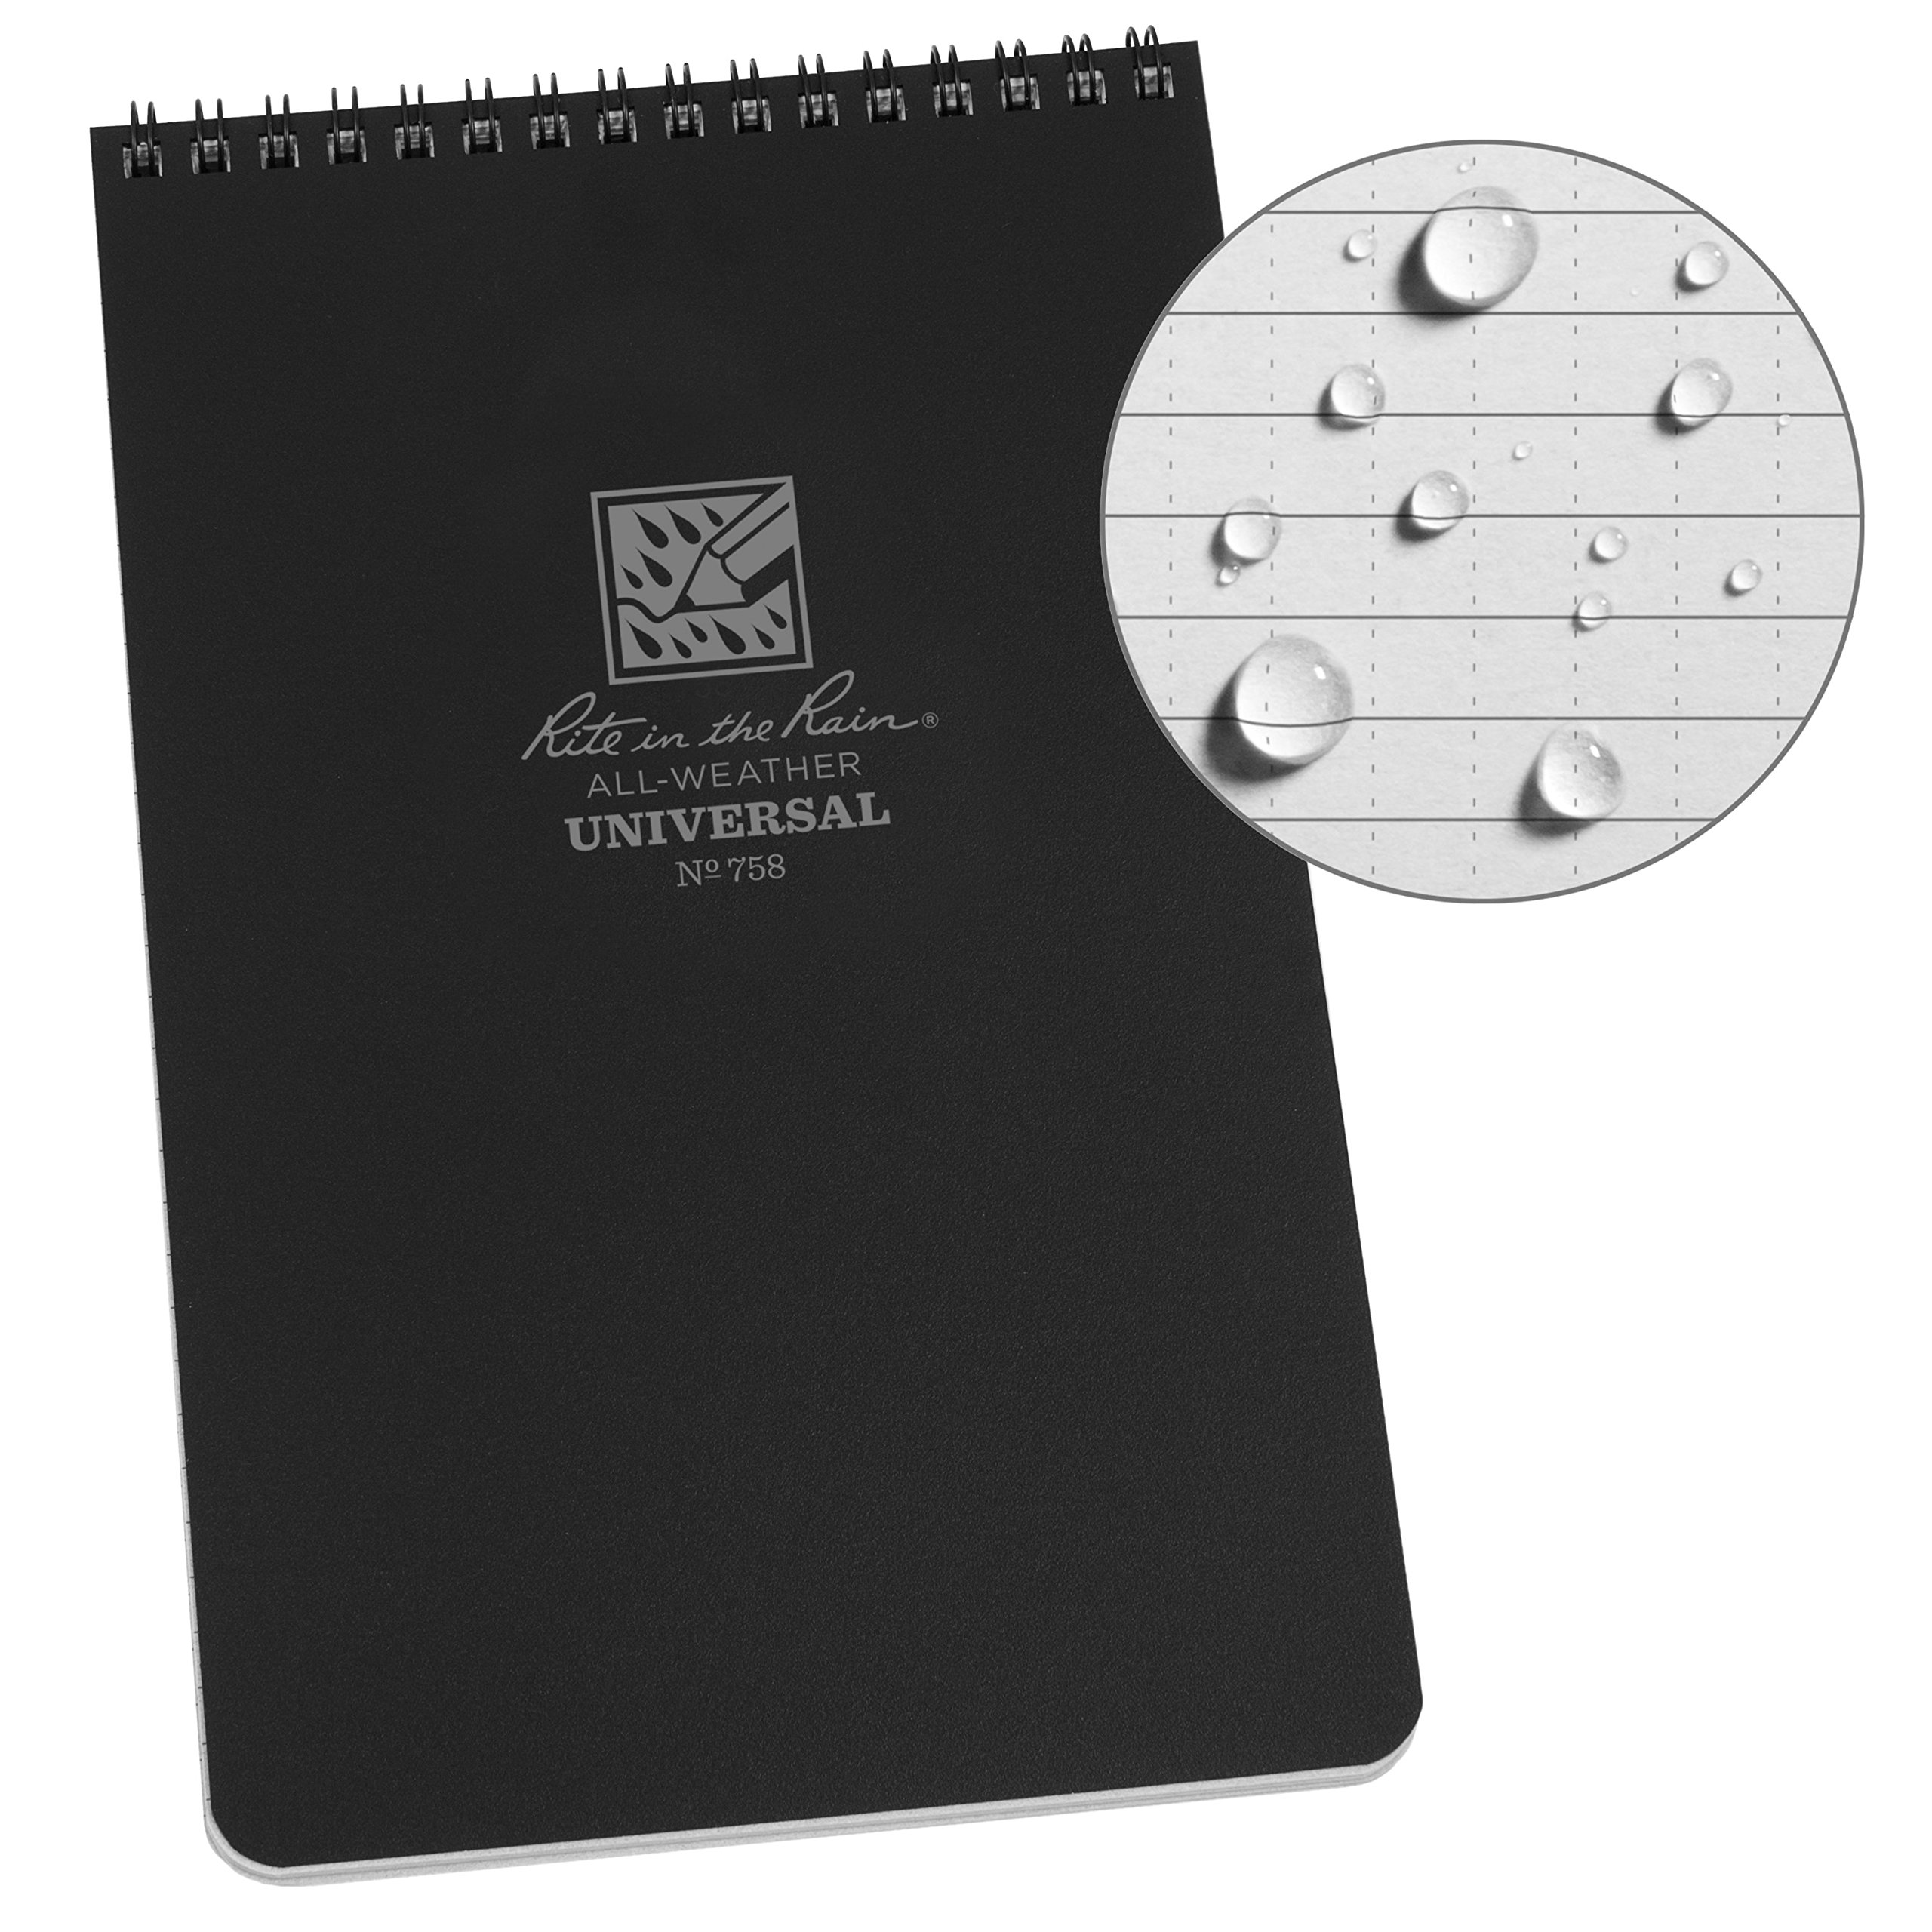 Rite in the Rain Weatherproof Top-Spiral Notebook, 5 1/2'' x 8 1/2'', Black Cover, Universal Pattern (No. 758)